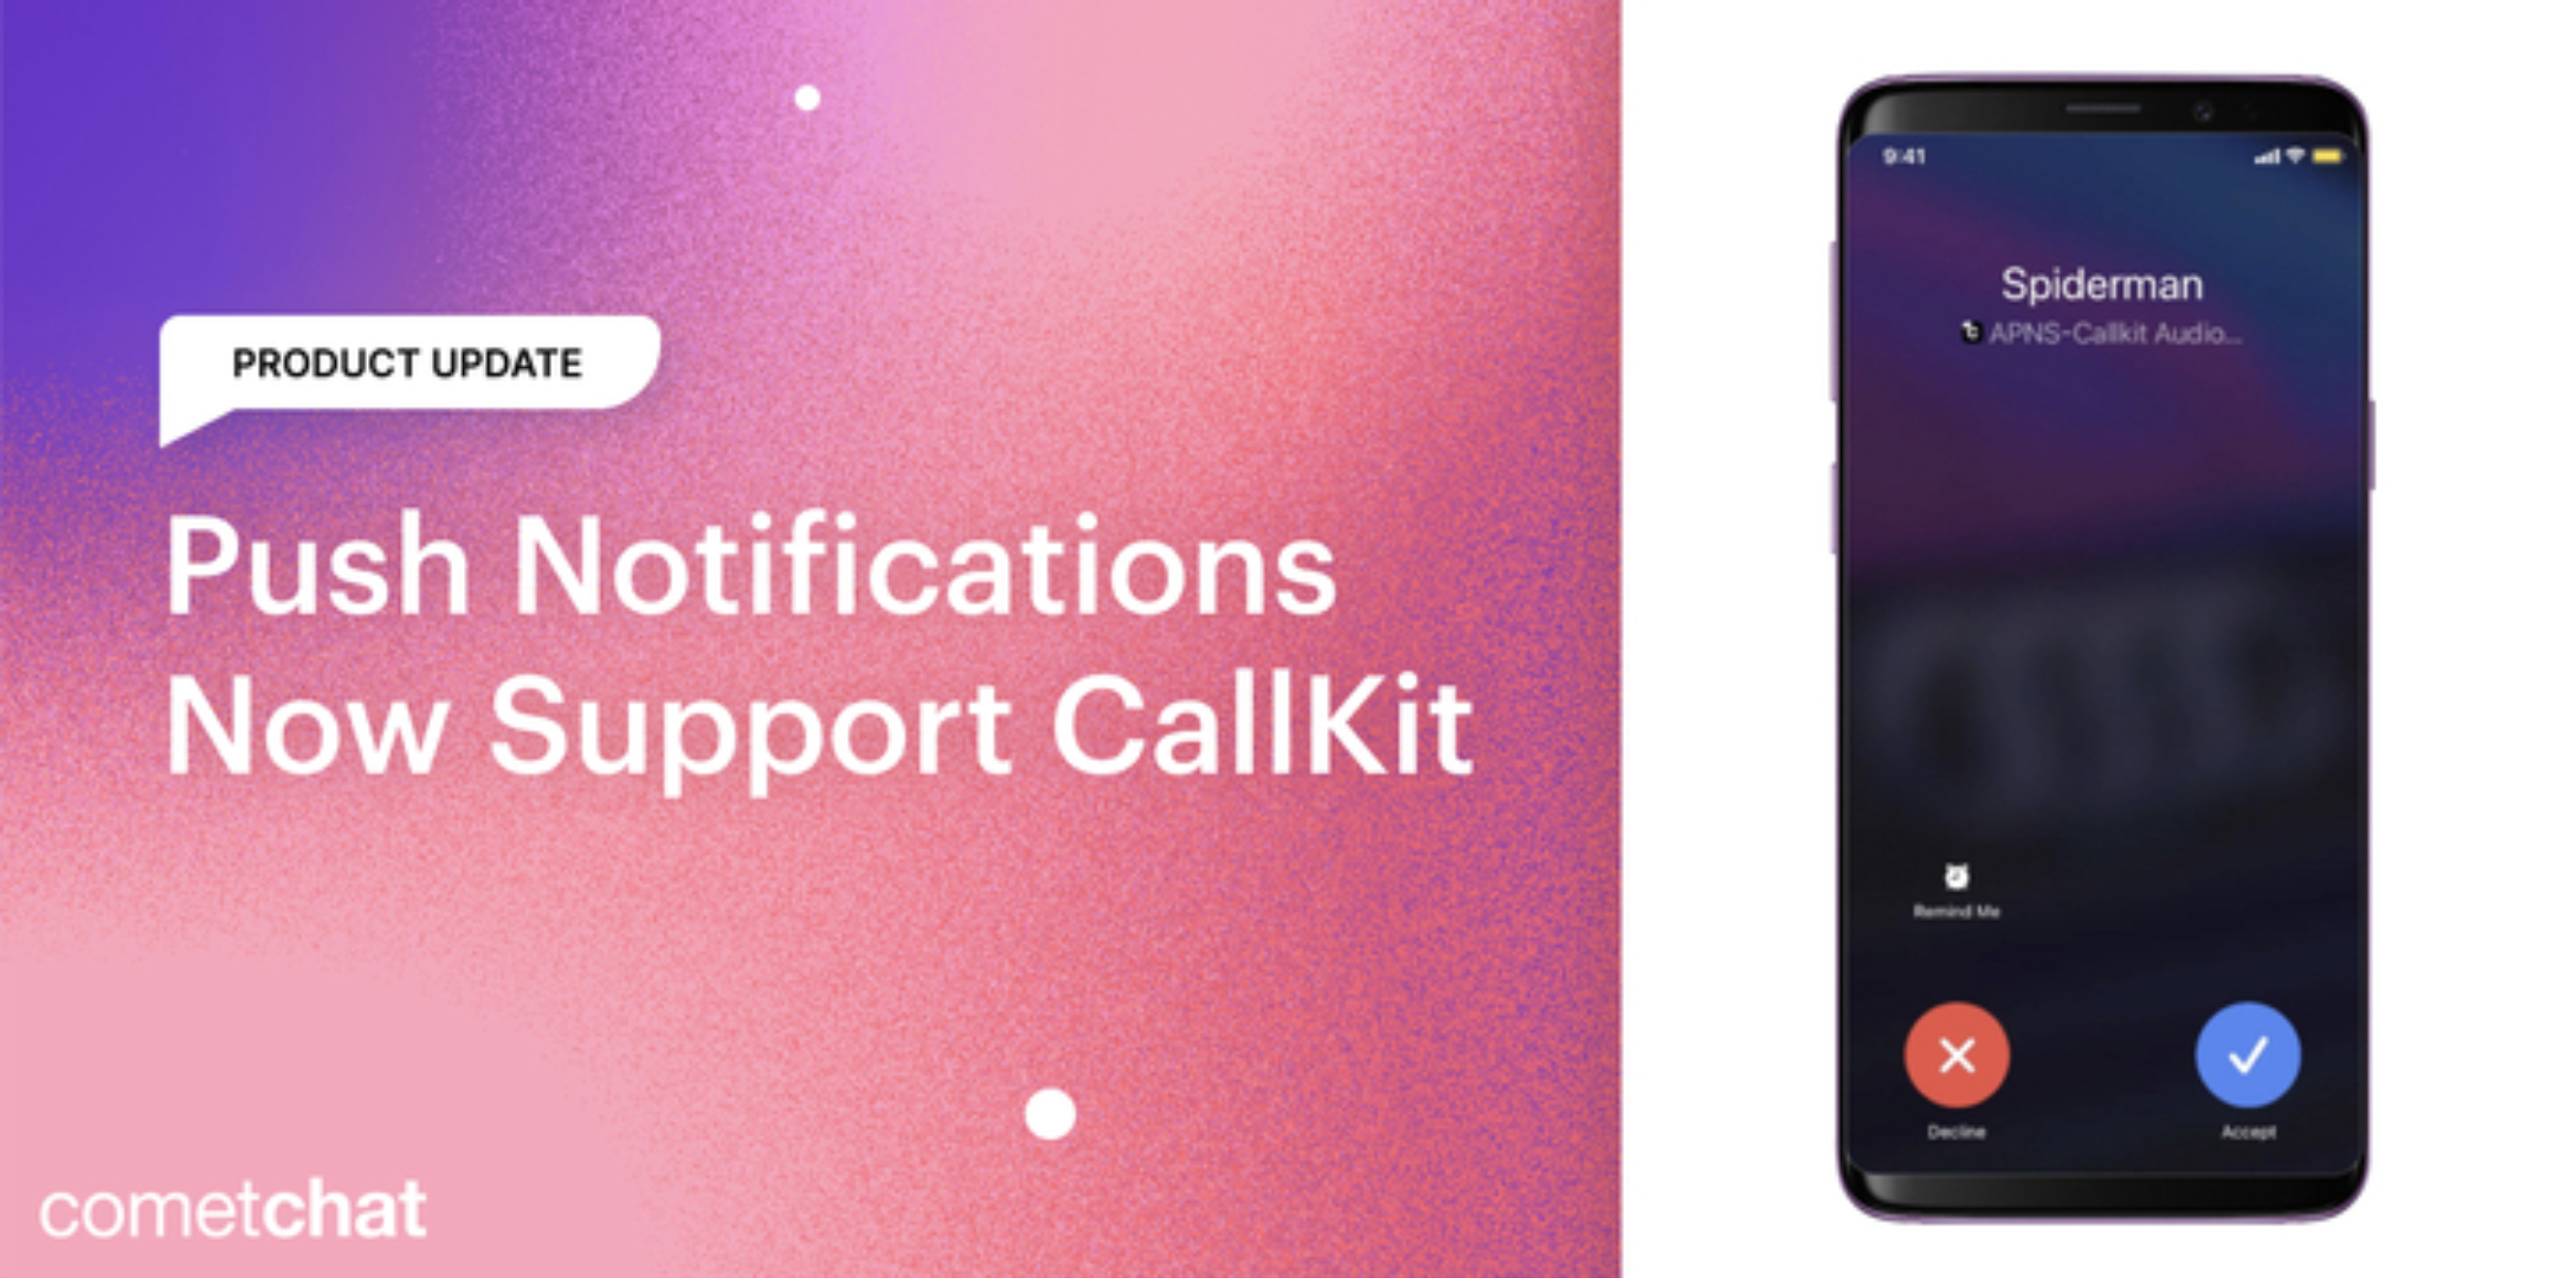 Product Update: Push Notifications Now Support CallKit